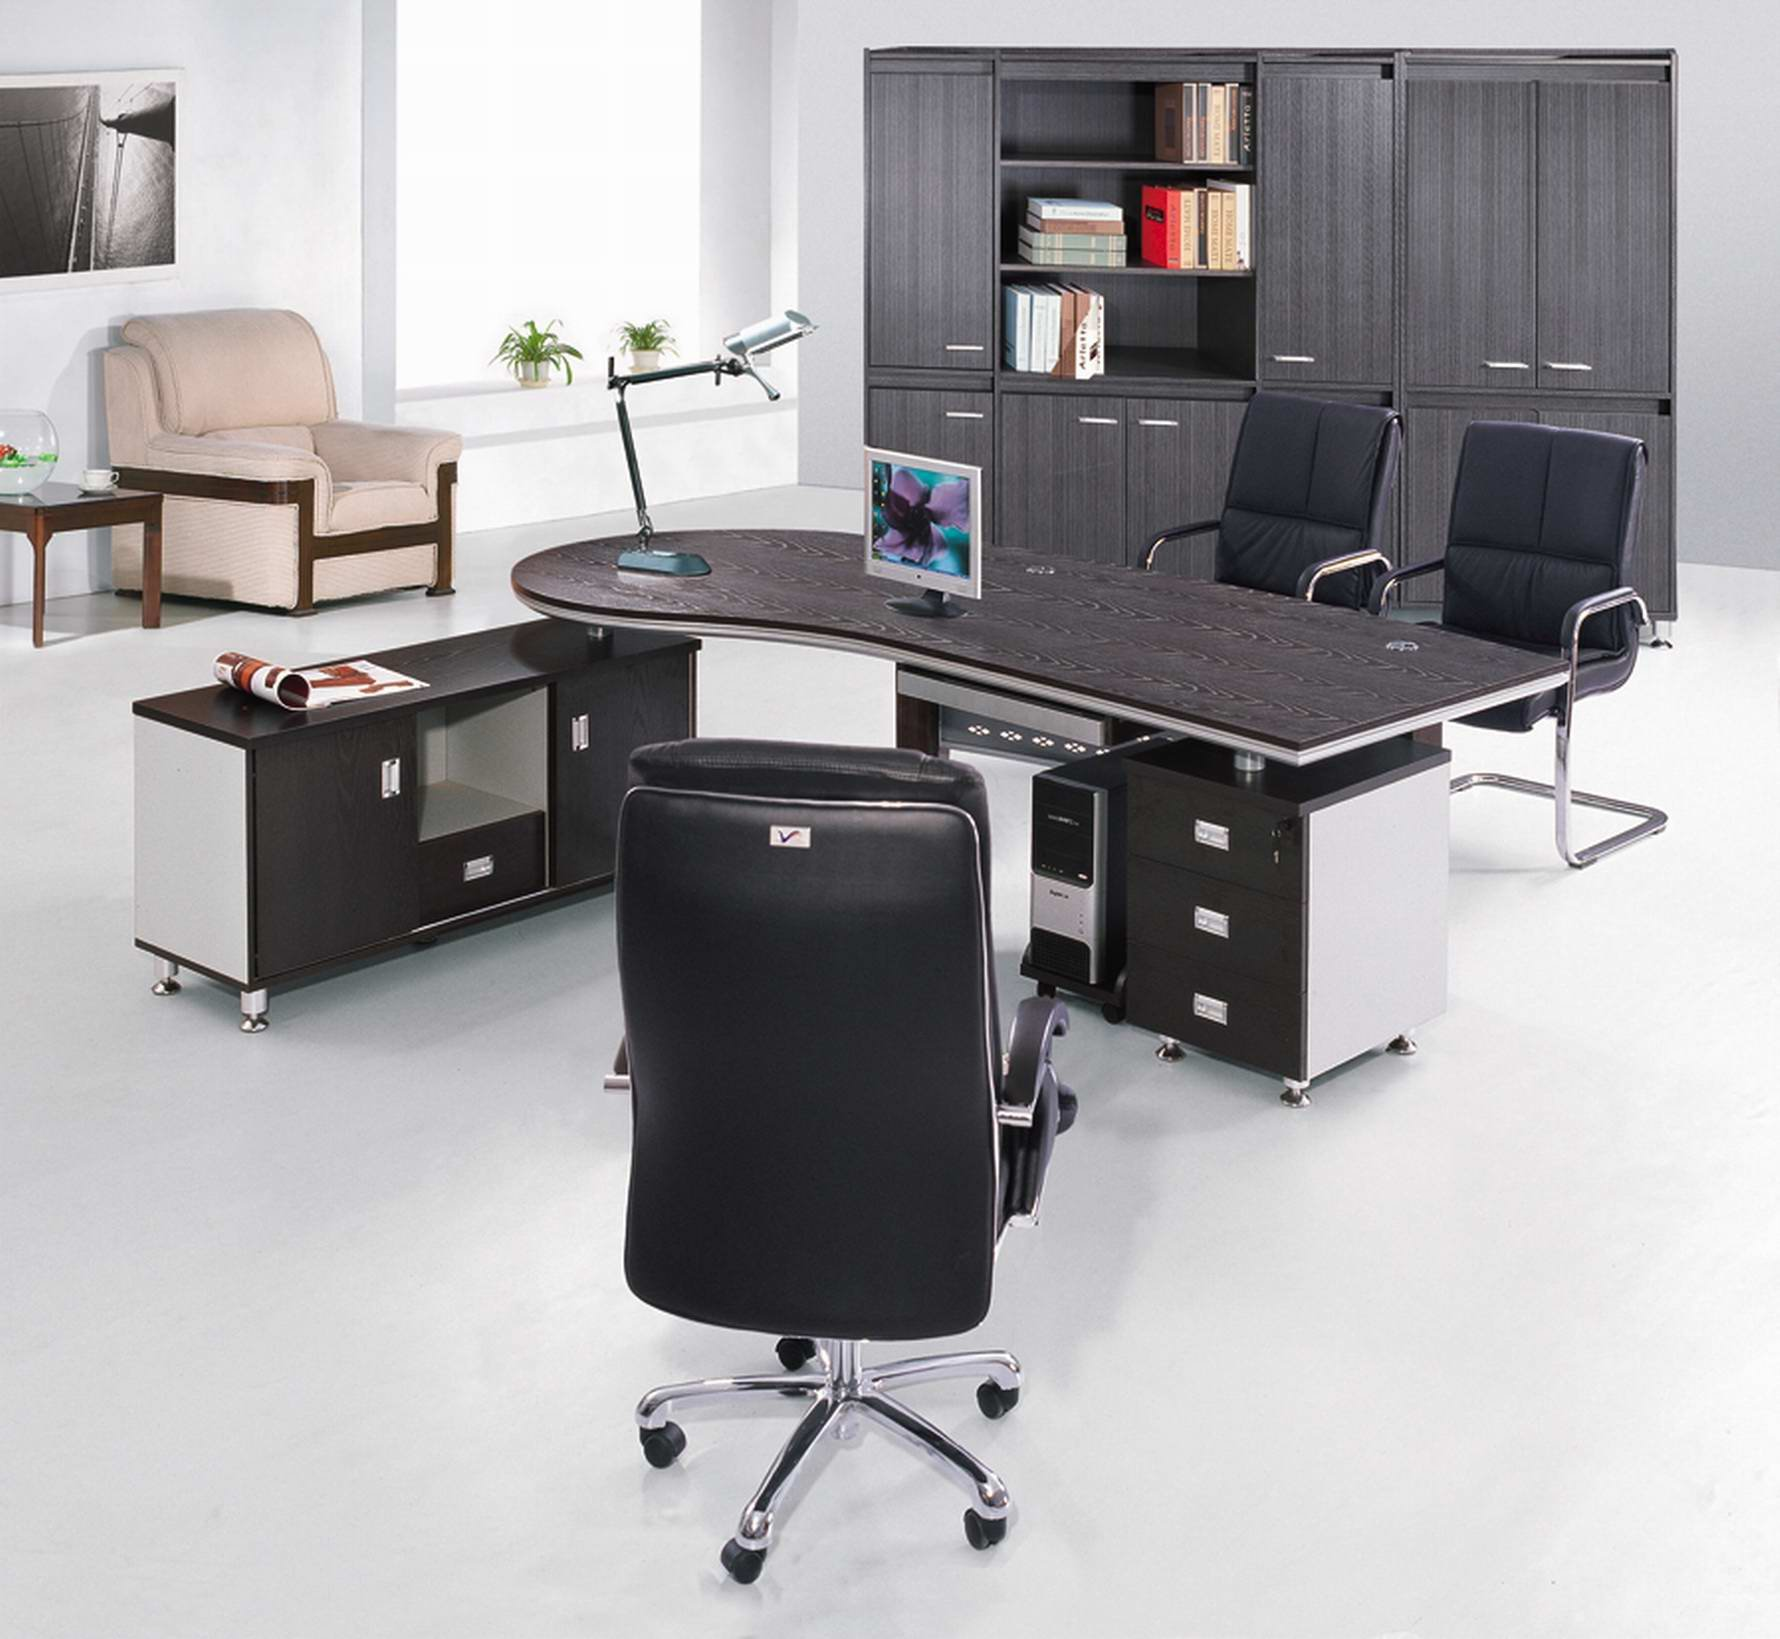 office tables and chairs images glider rocking chair cushions replacement new furniture the store